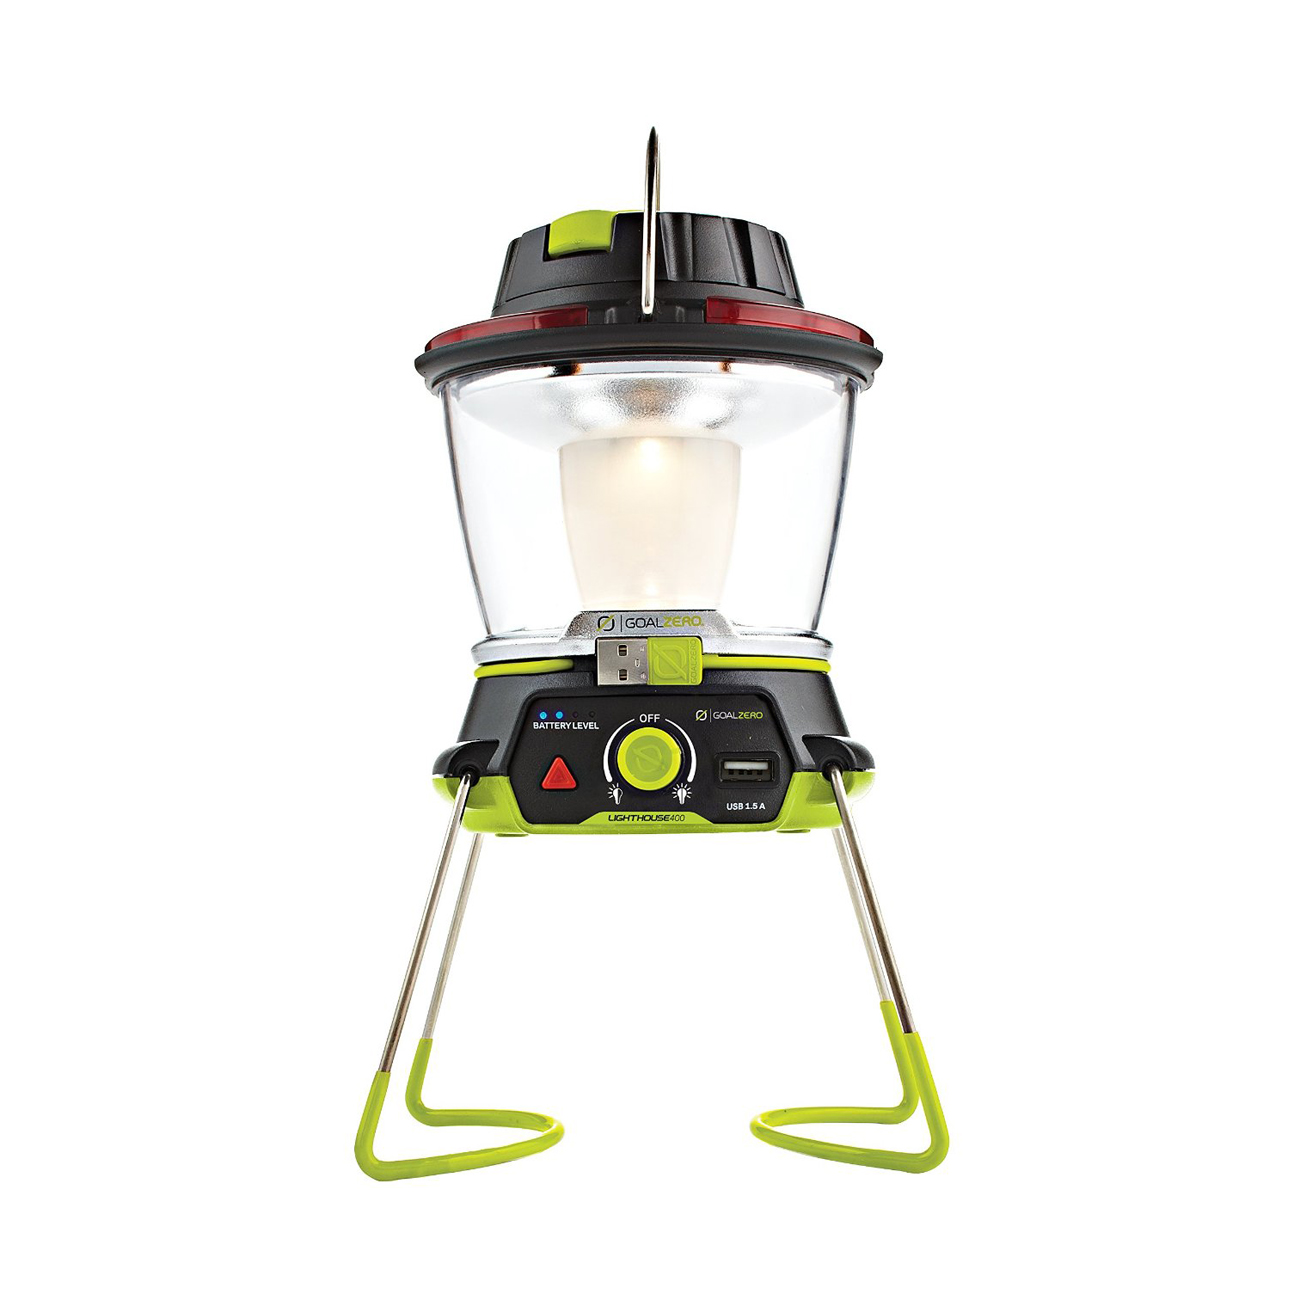 Goal Zero Lighthouse 400 Lantern and USB Power Hub - bit.ly/2fVAEmP